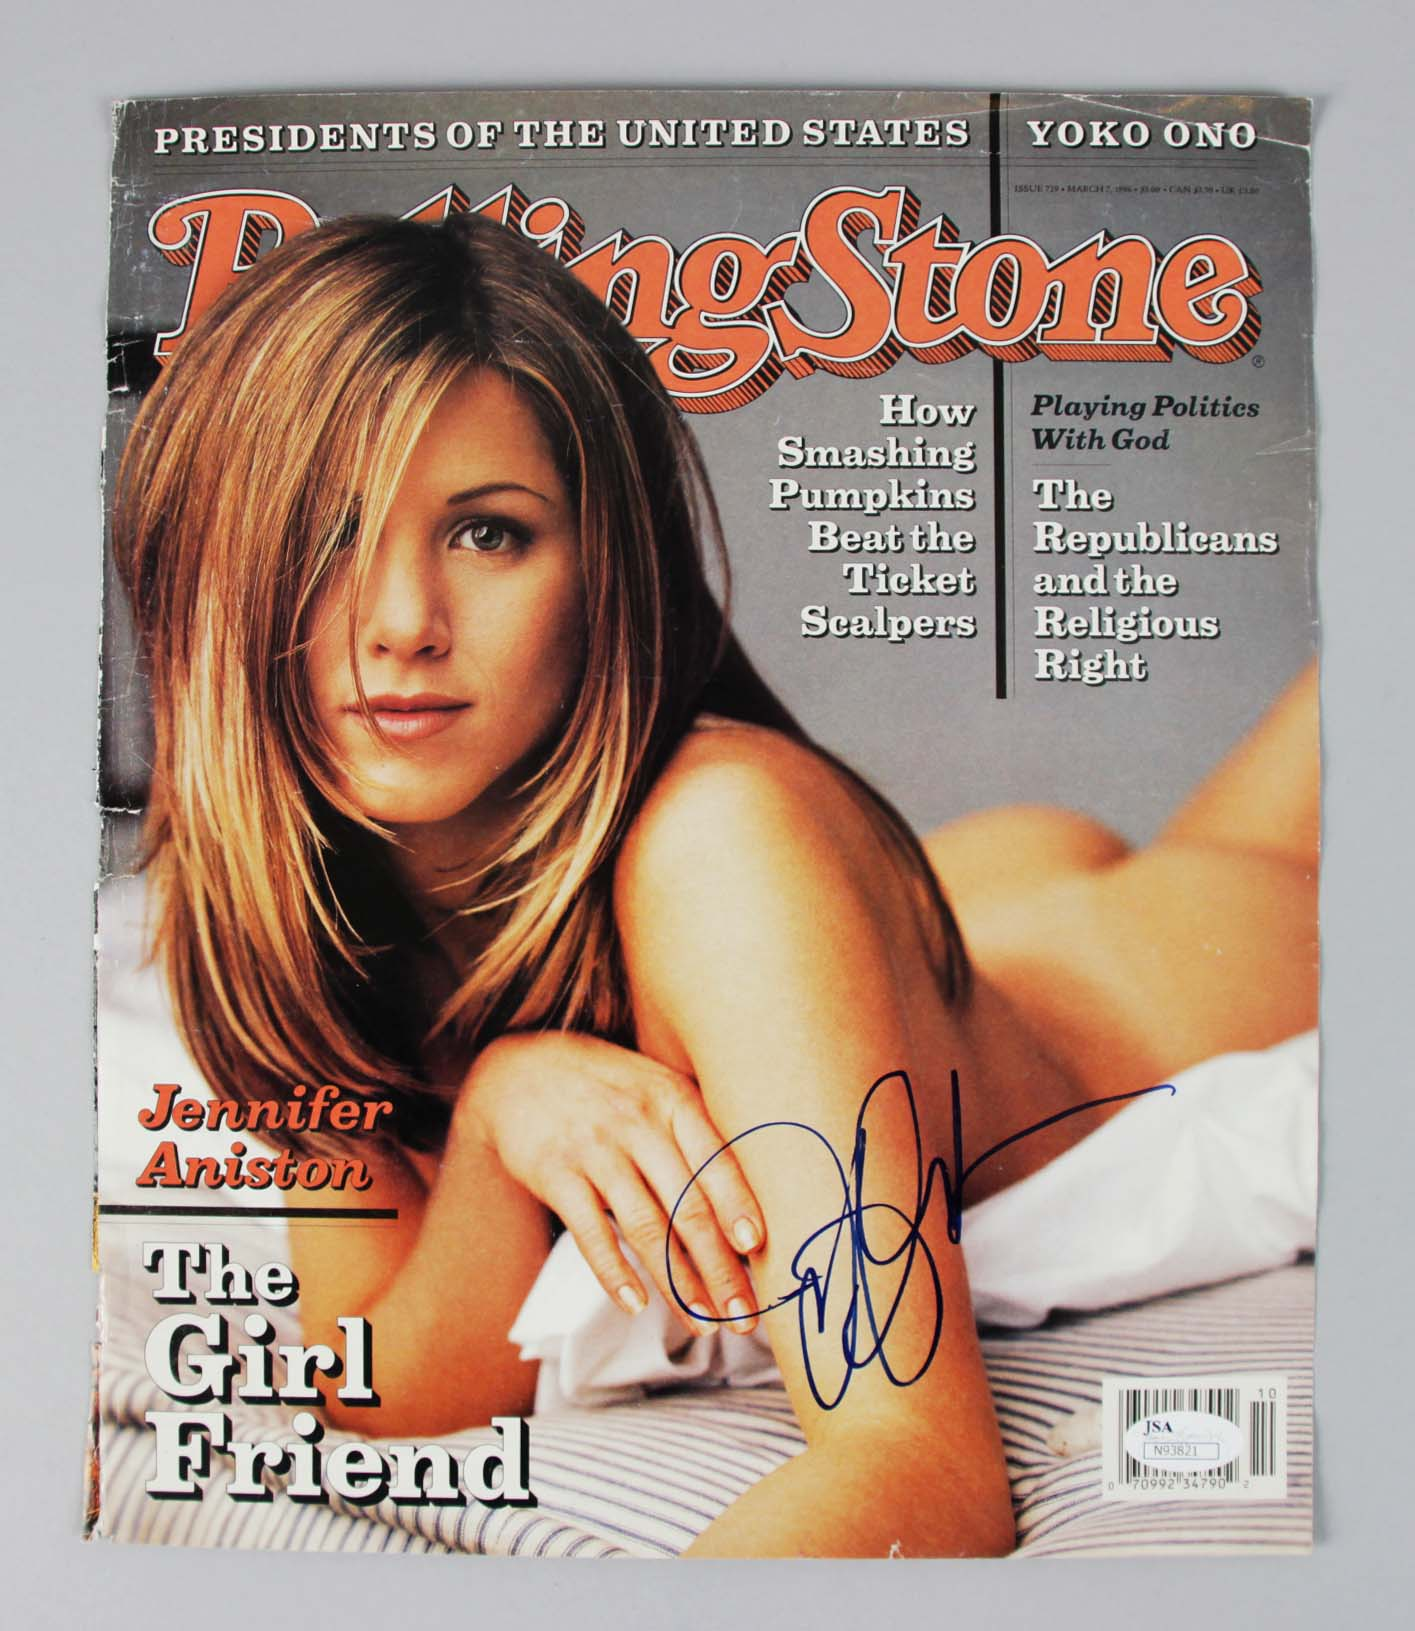 Jennifer Aniston Signed Rolling Stones Magazine Cover